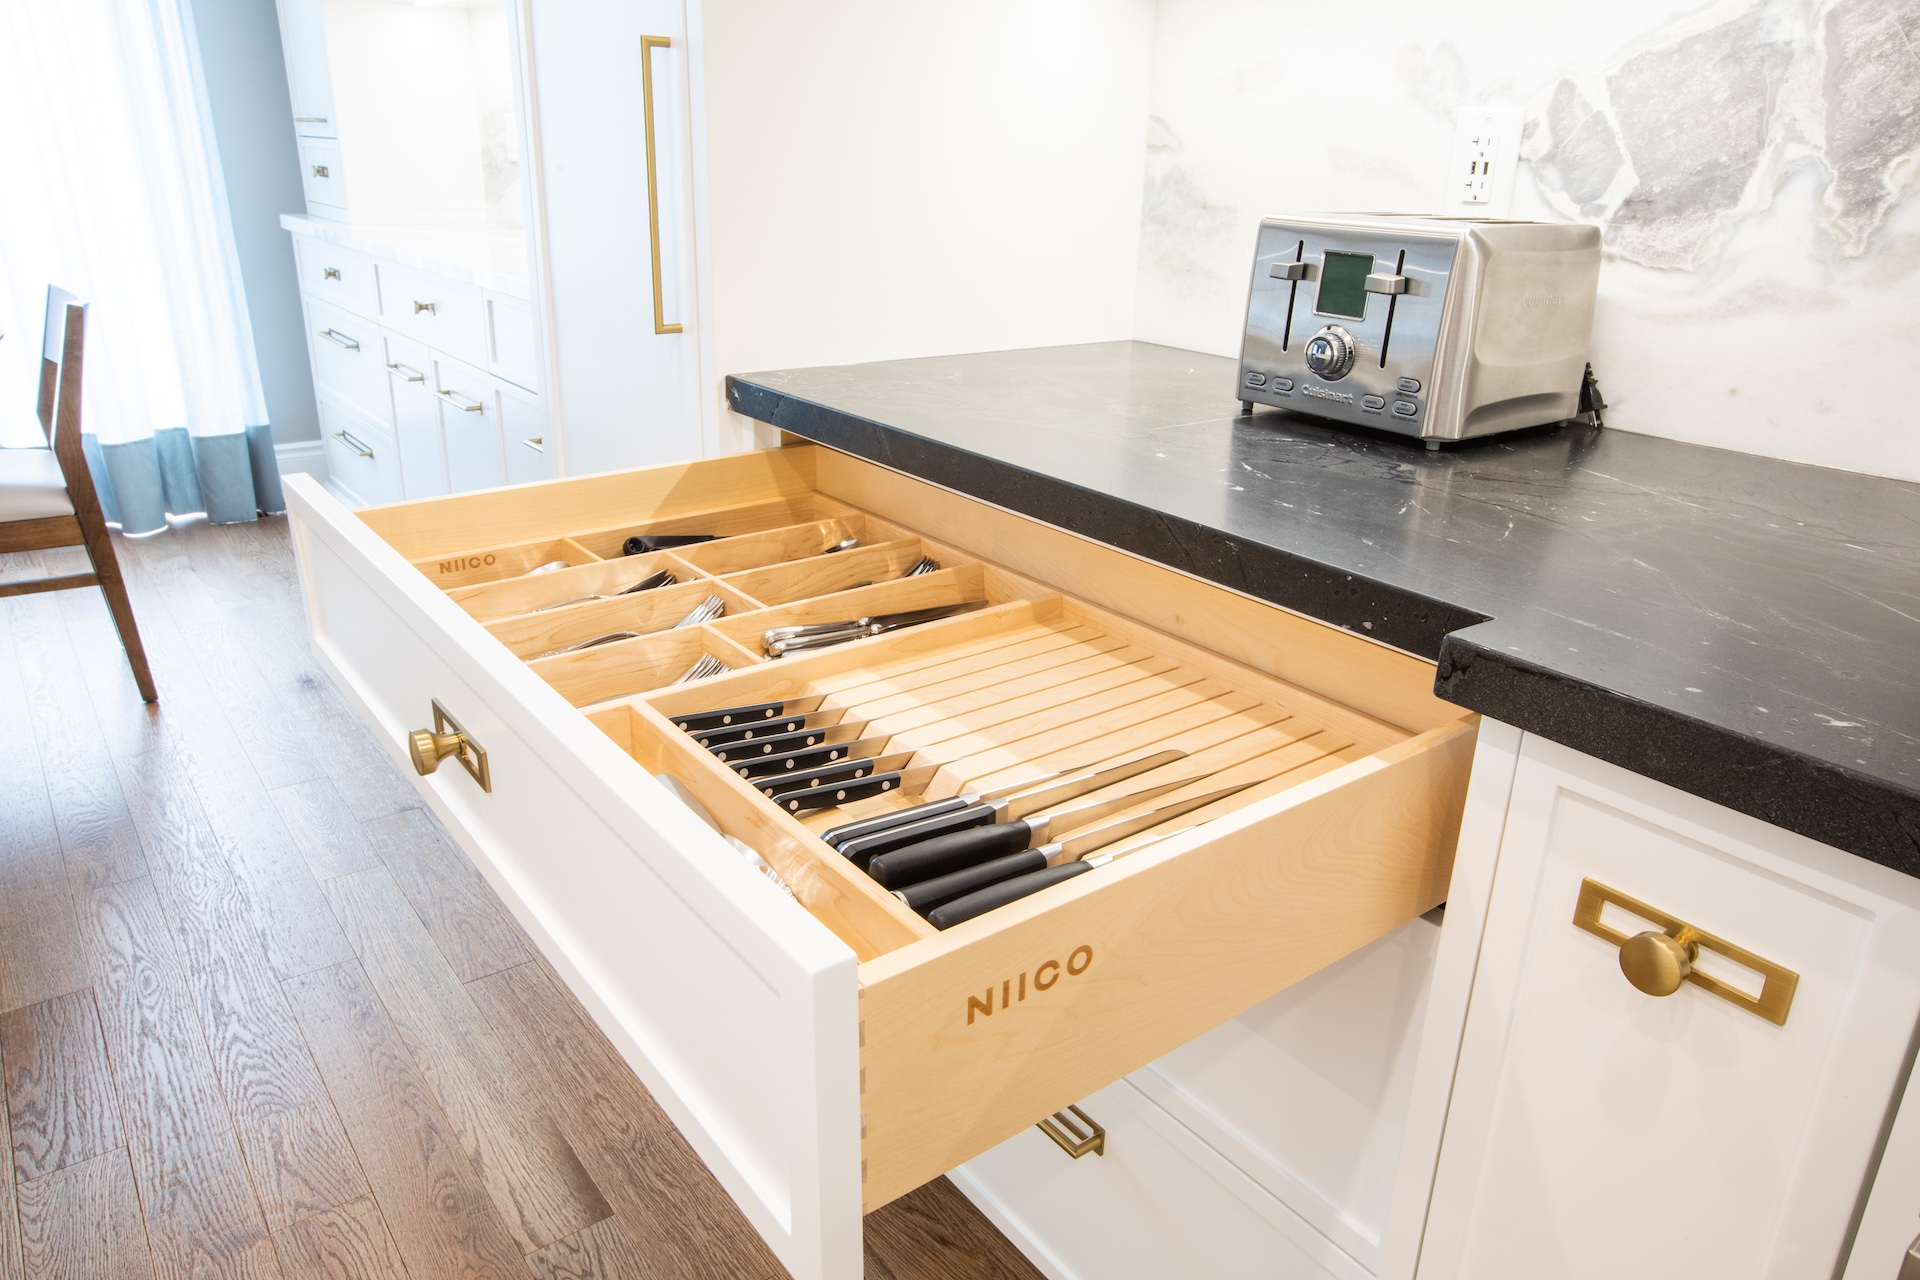 wood drawer open with knives